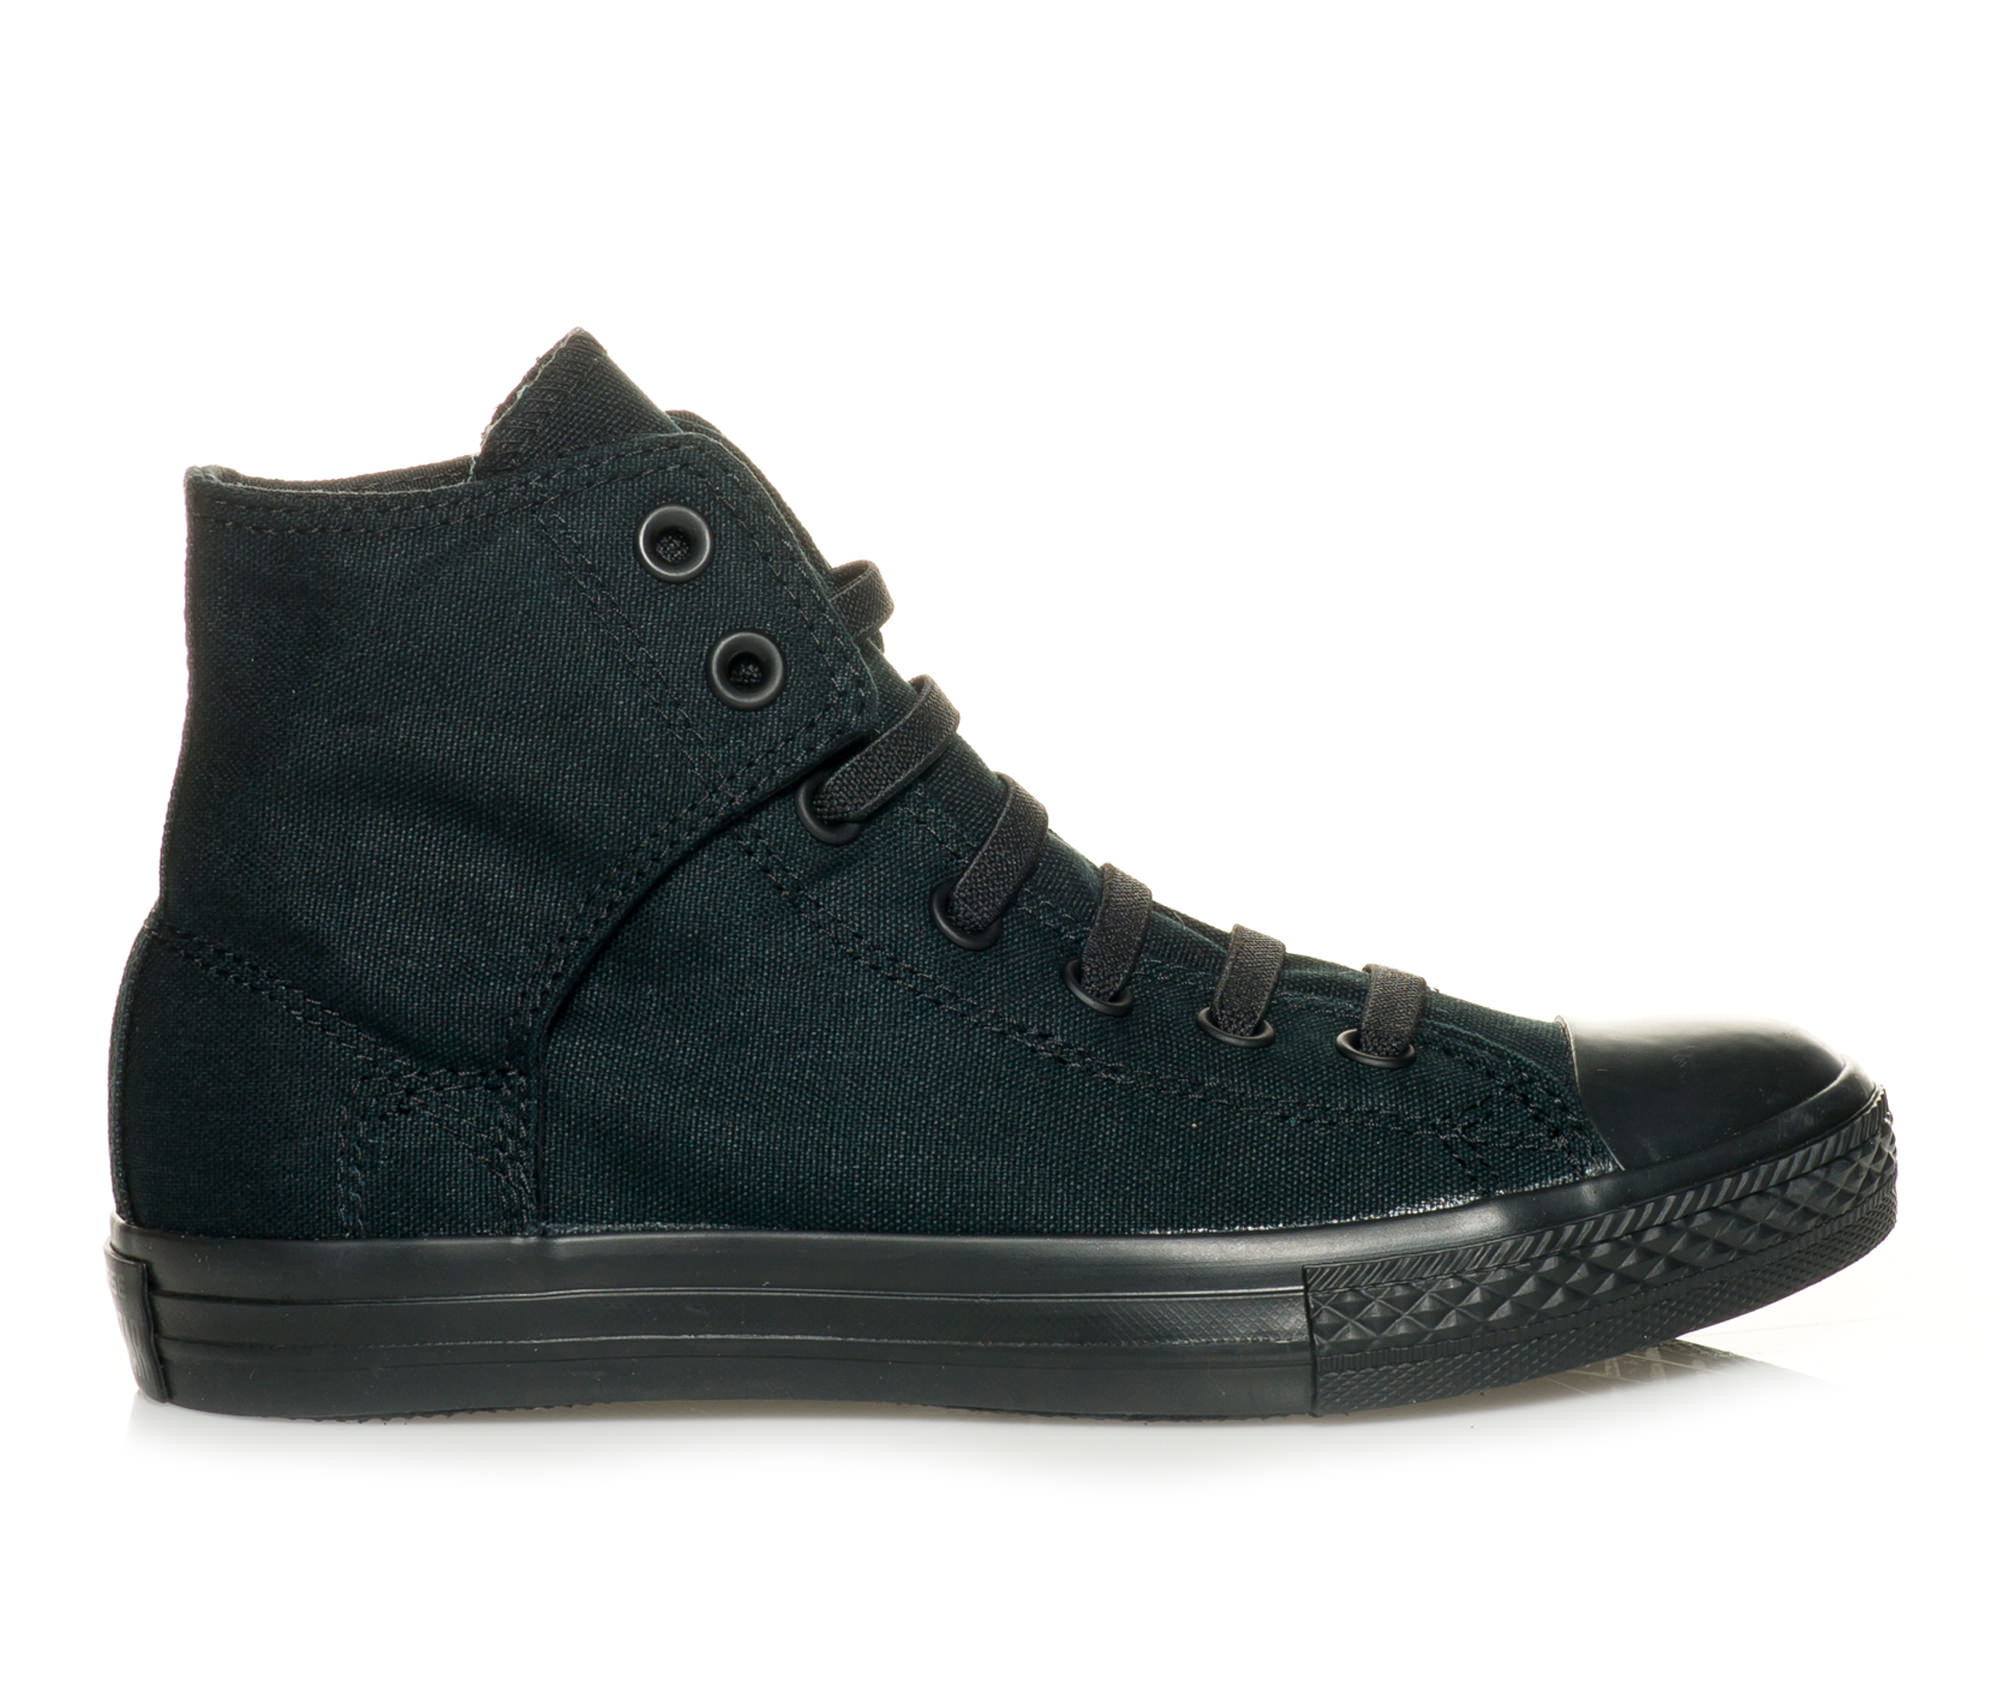 Boys' Converse Chuck Taylor All Star Easy Slip Hi Sneakers (Black)